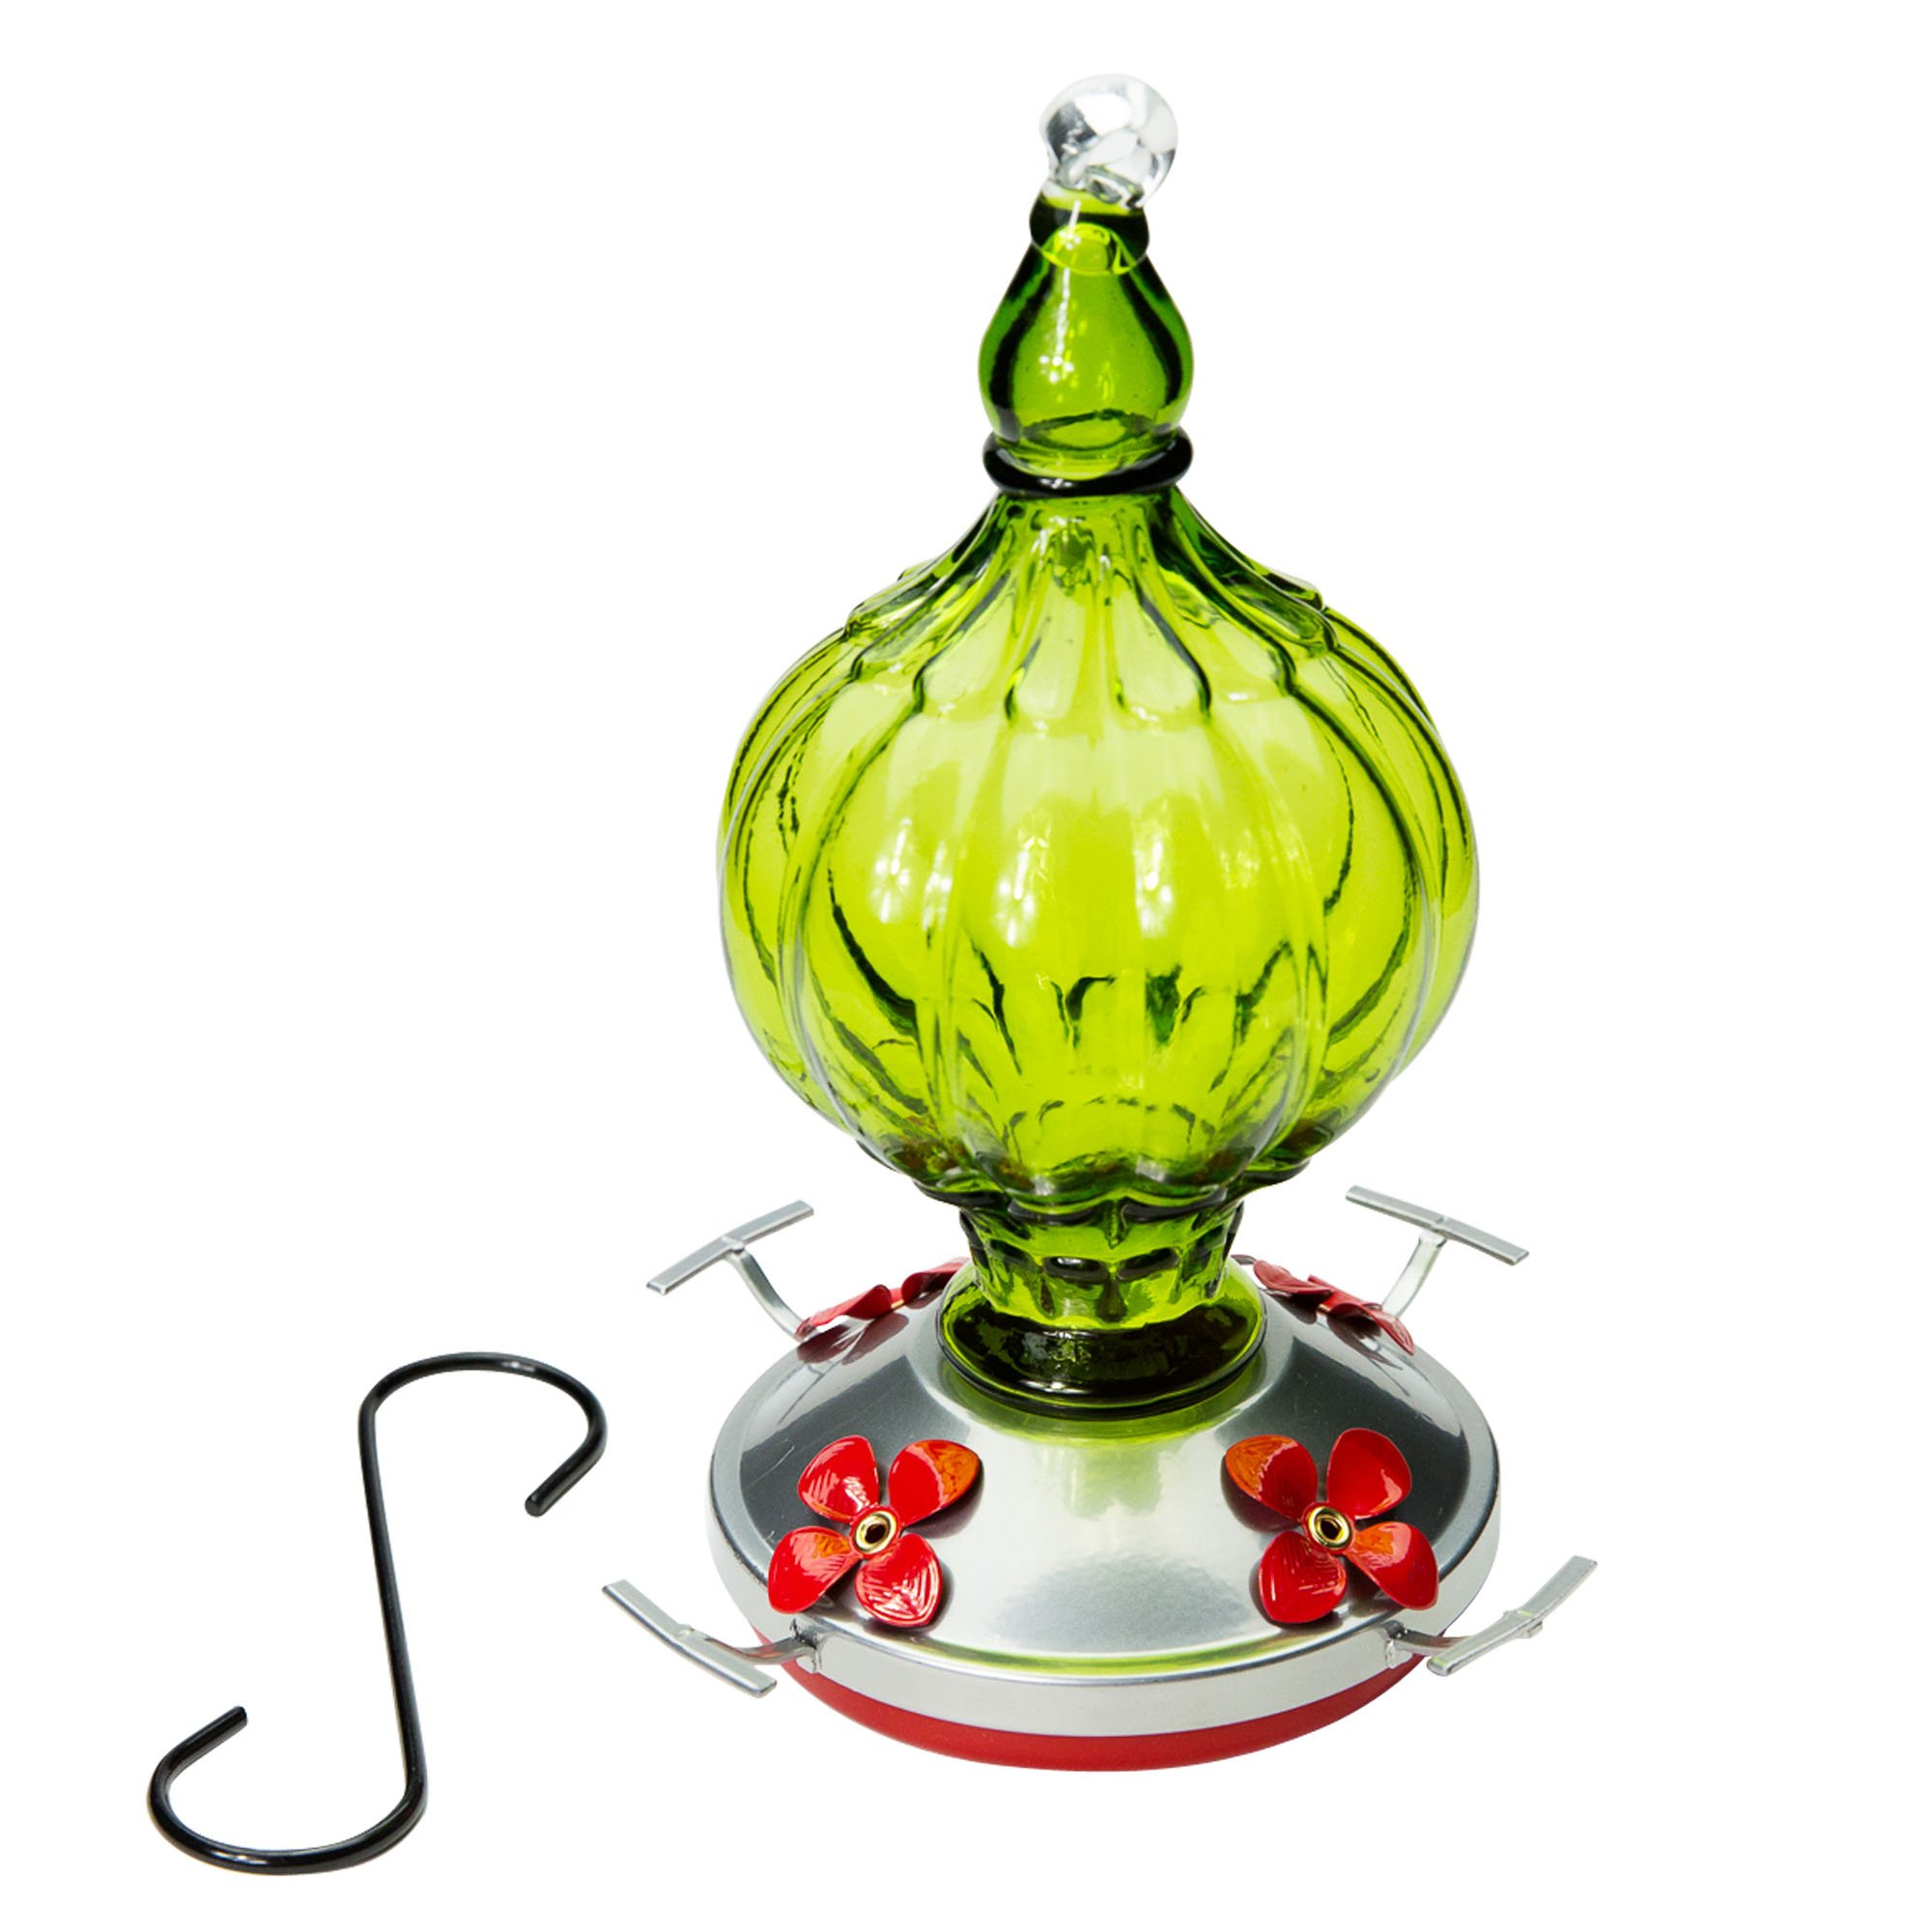 Hummingbird Feeder --- BEAUTIFUL HAND-BLOWN GLASS Feeders | Bird Lovers | Holds 20 ounces of Nectar | Great Reviews (by Best Home Products) (Green - Pear Petals)